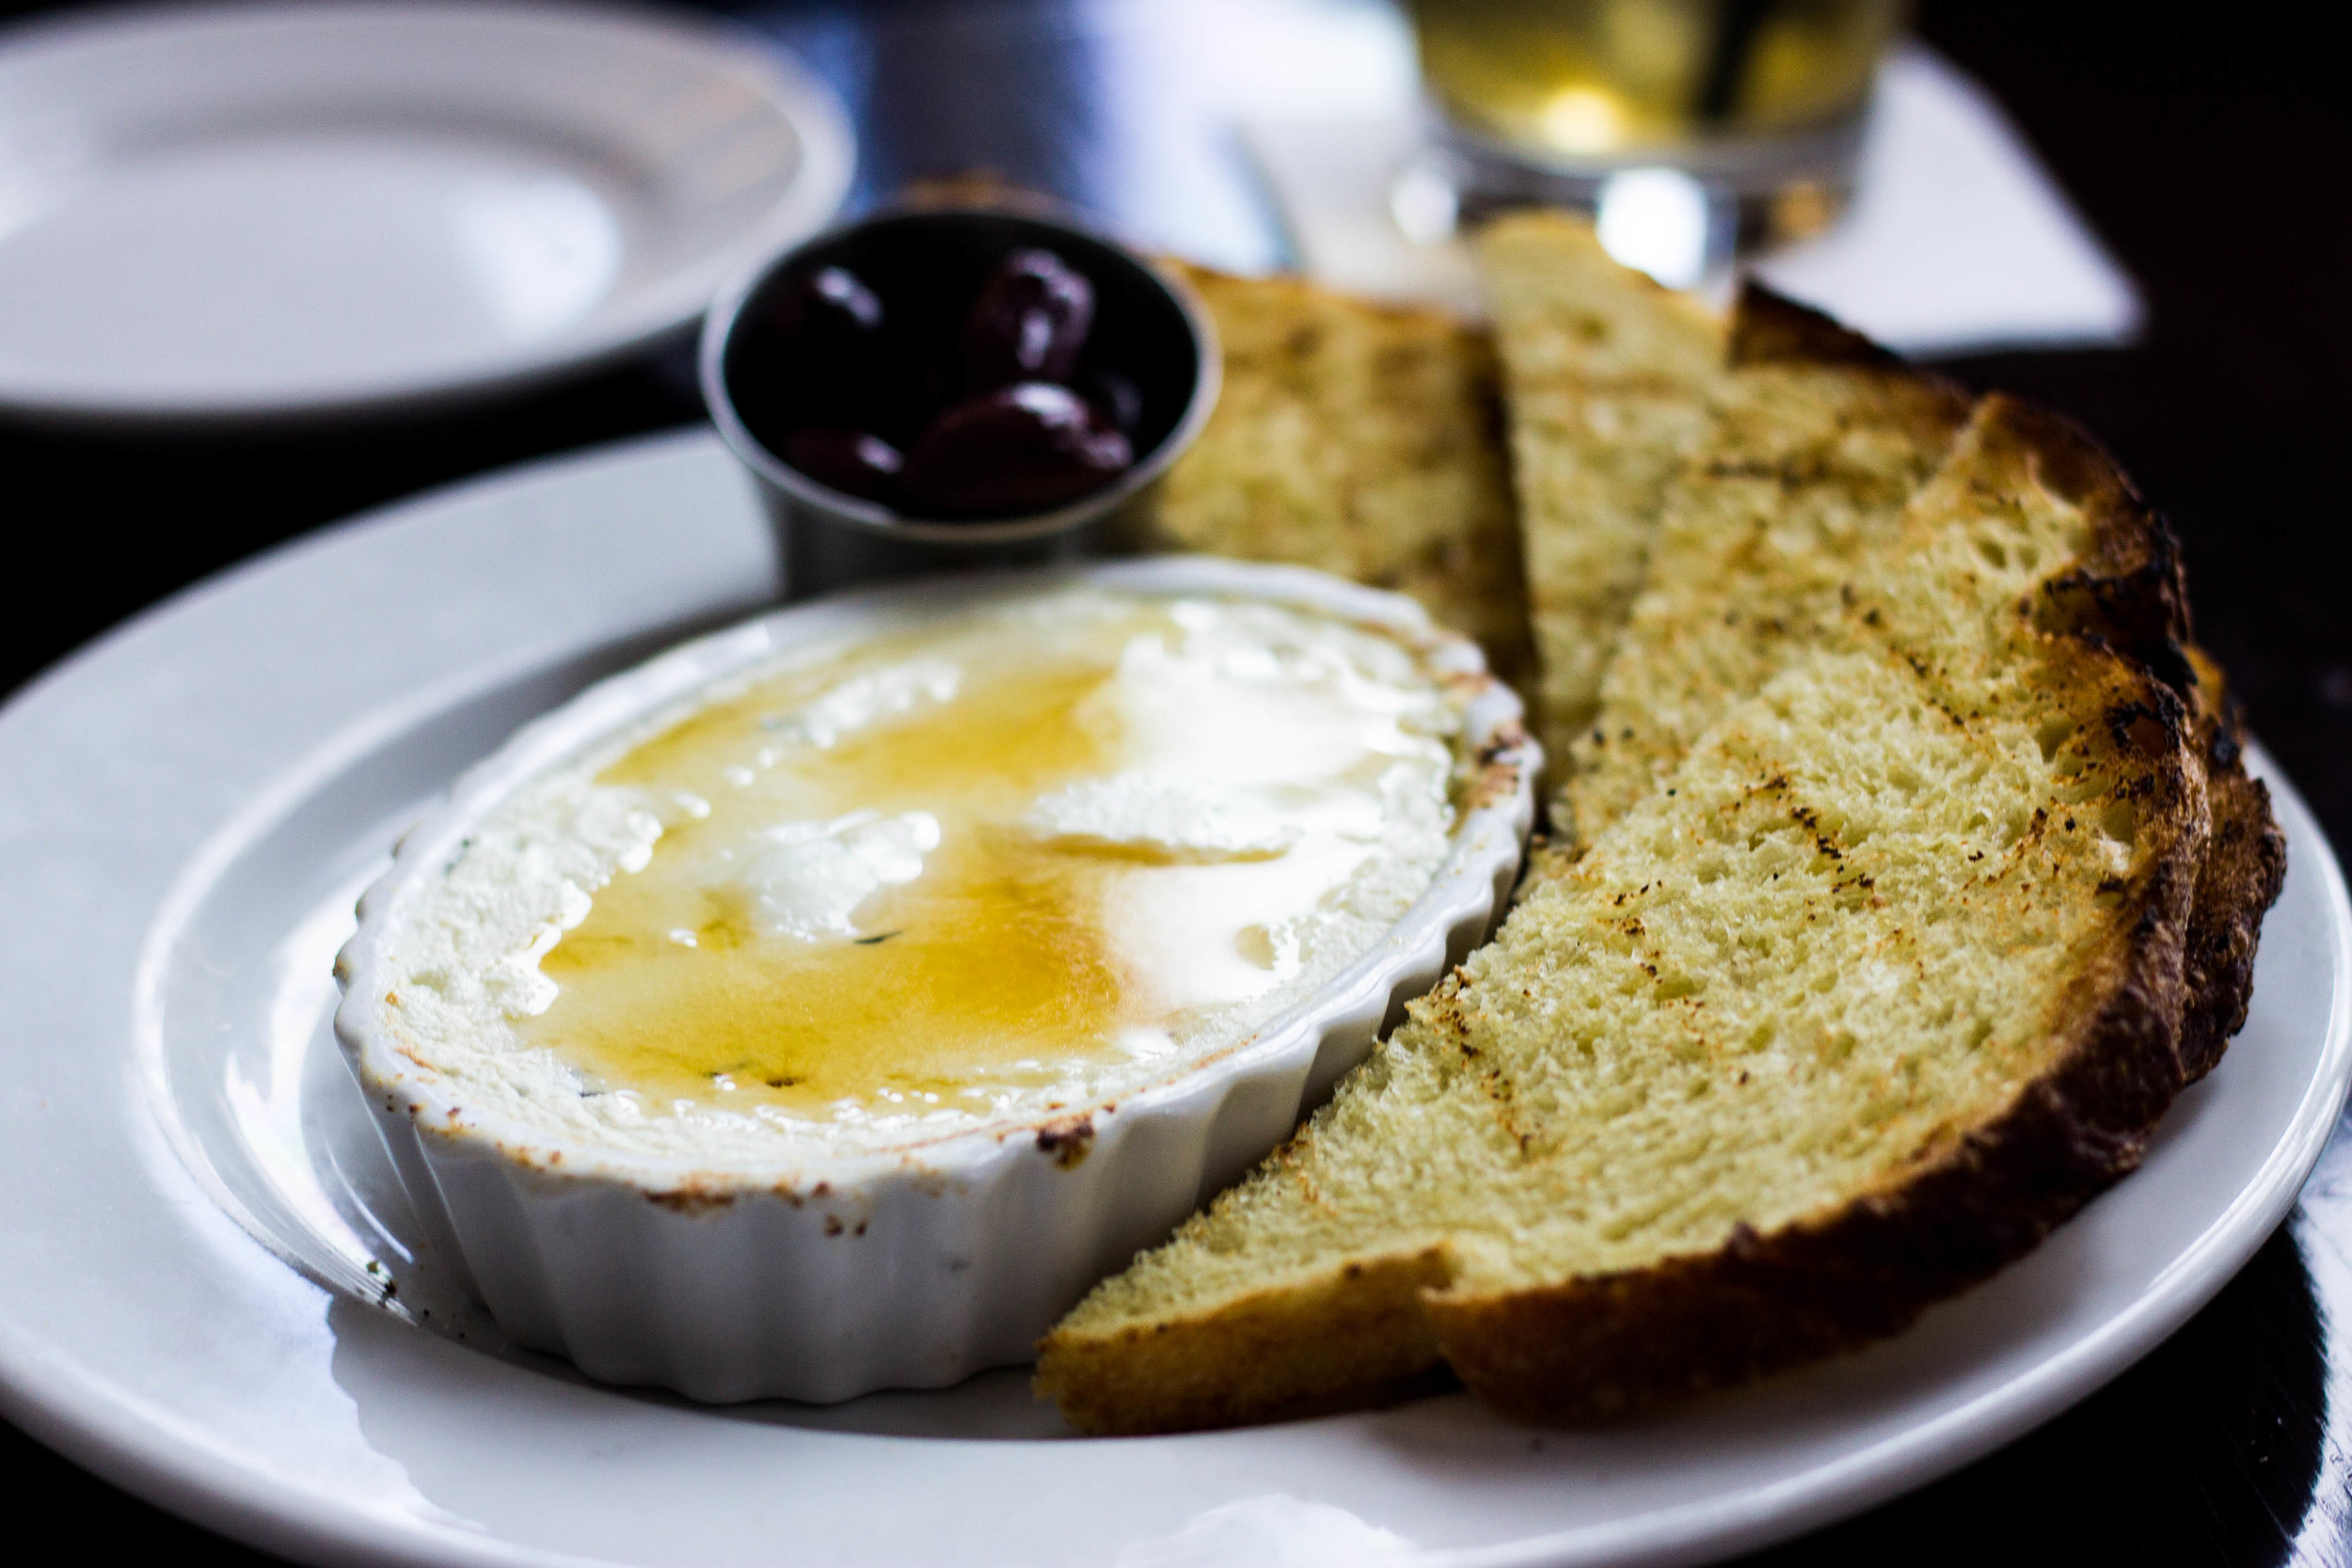 Goat Cheese and Honey at Westport Cafe and Bar